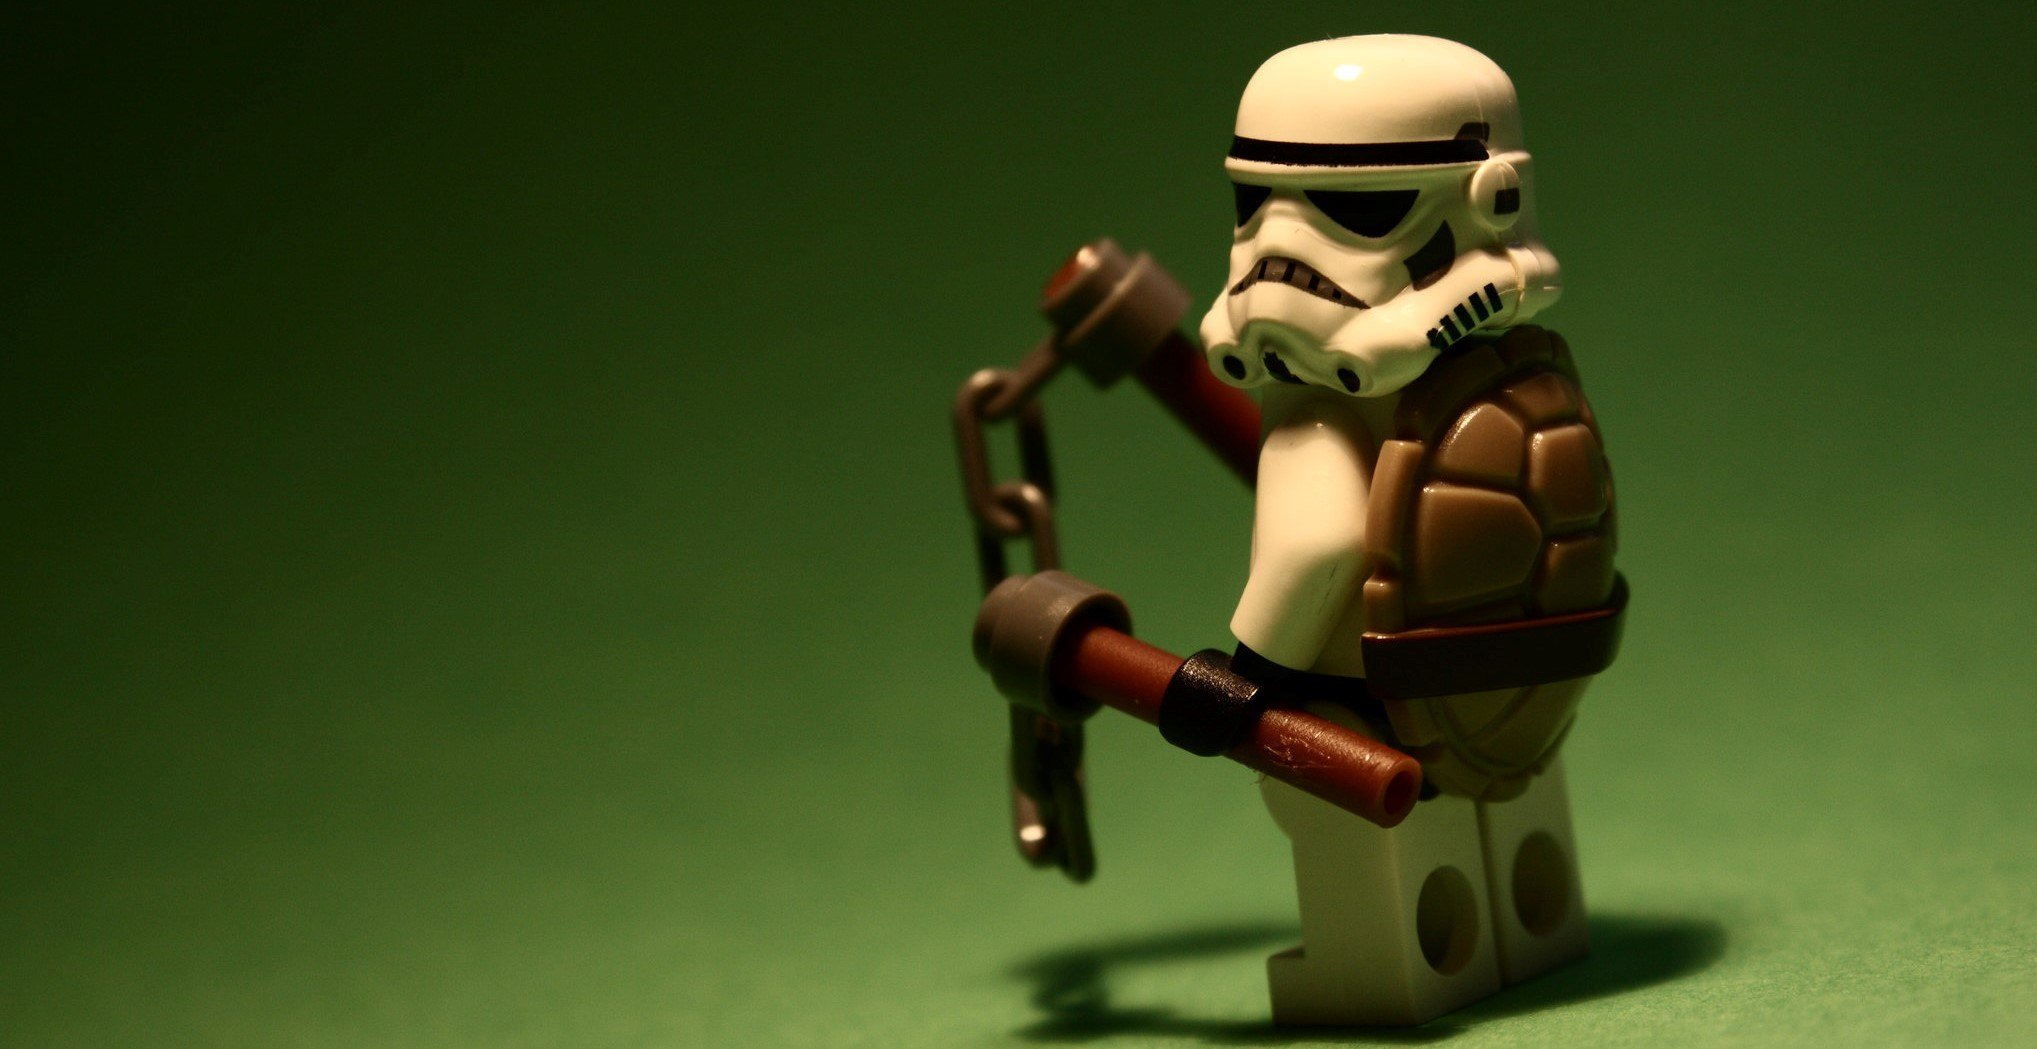 This is a mix and match photo, of a stormtrooper and ninja turtle, which probably makes him pretty flexible.